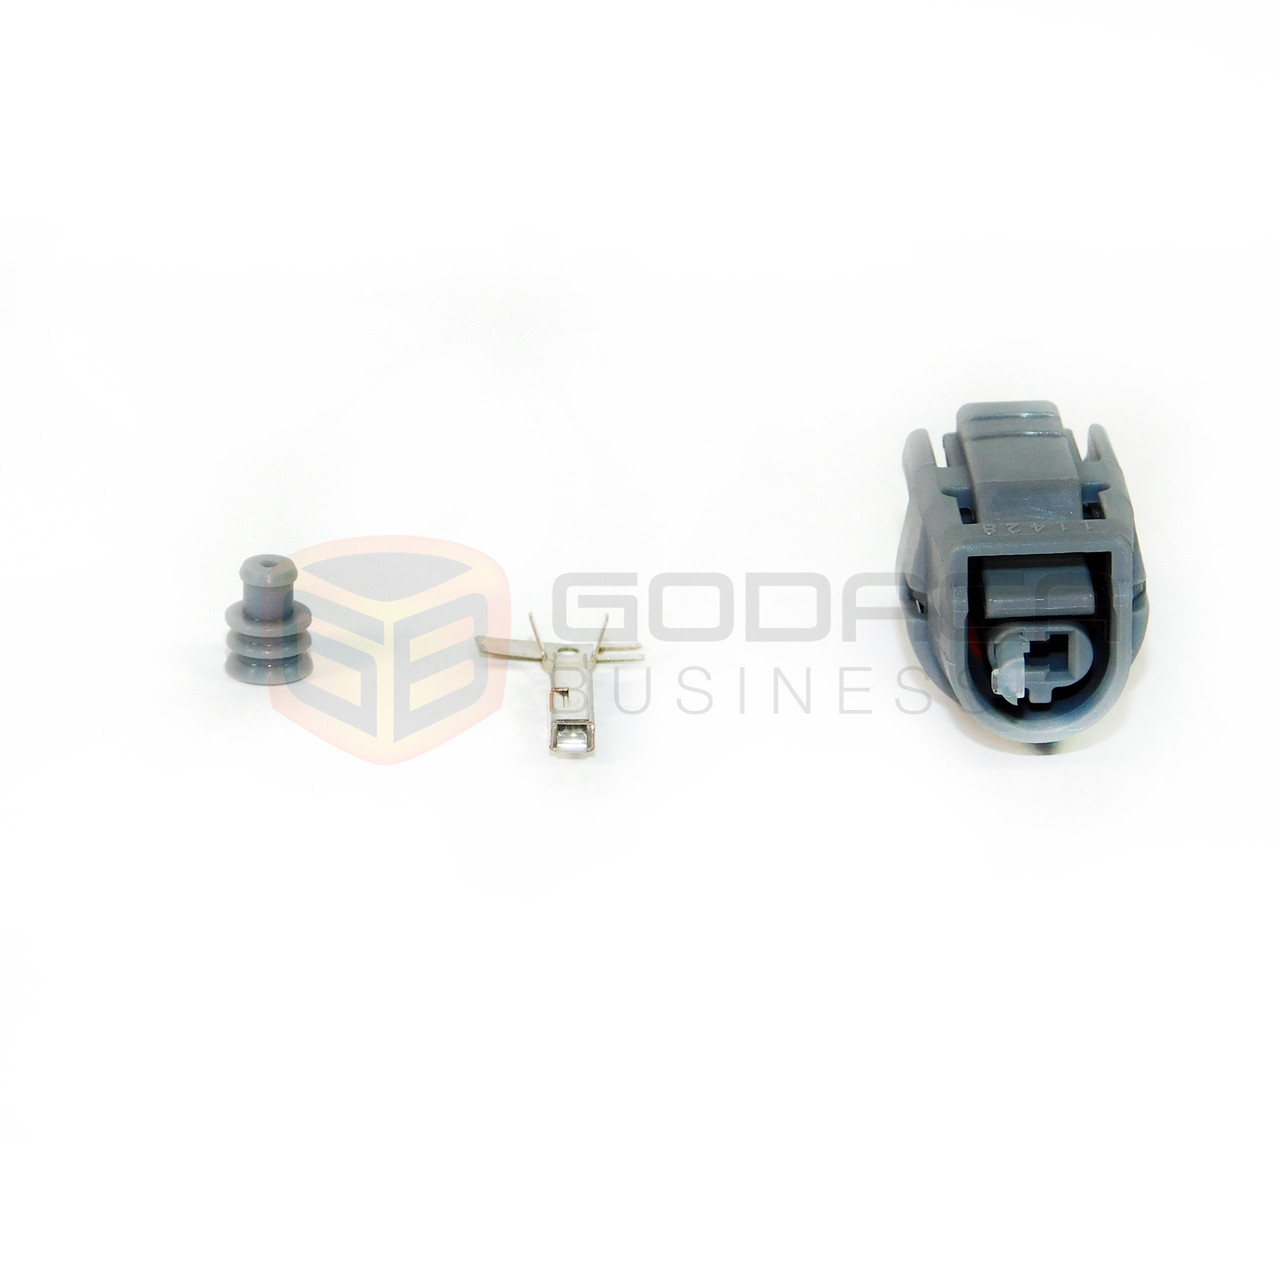 1x Connector Temperature sensor for Toyota 2JZ 90980-11428 w/out wire